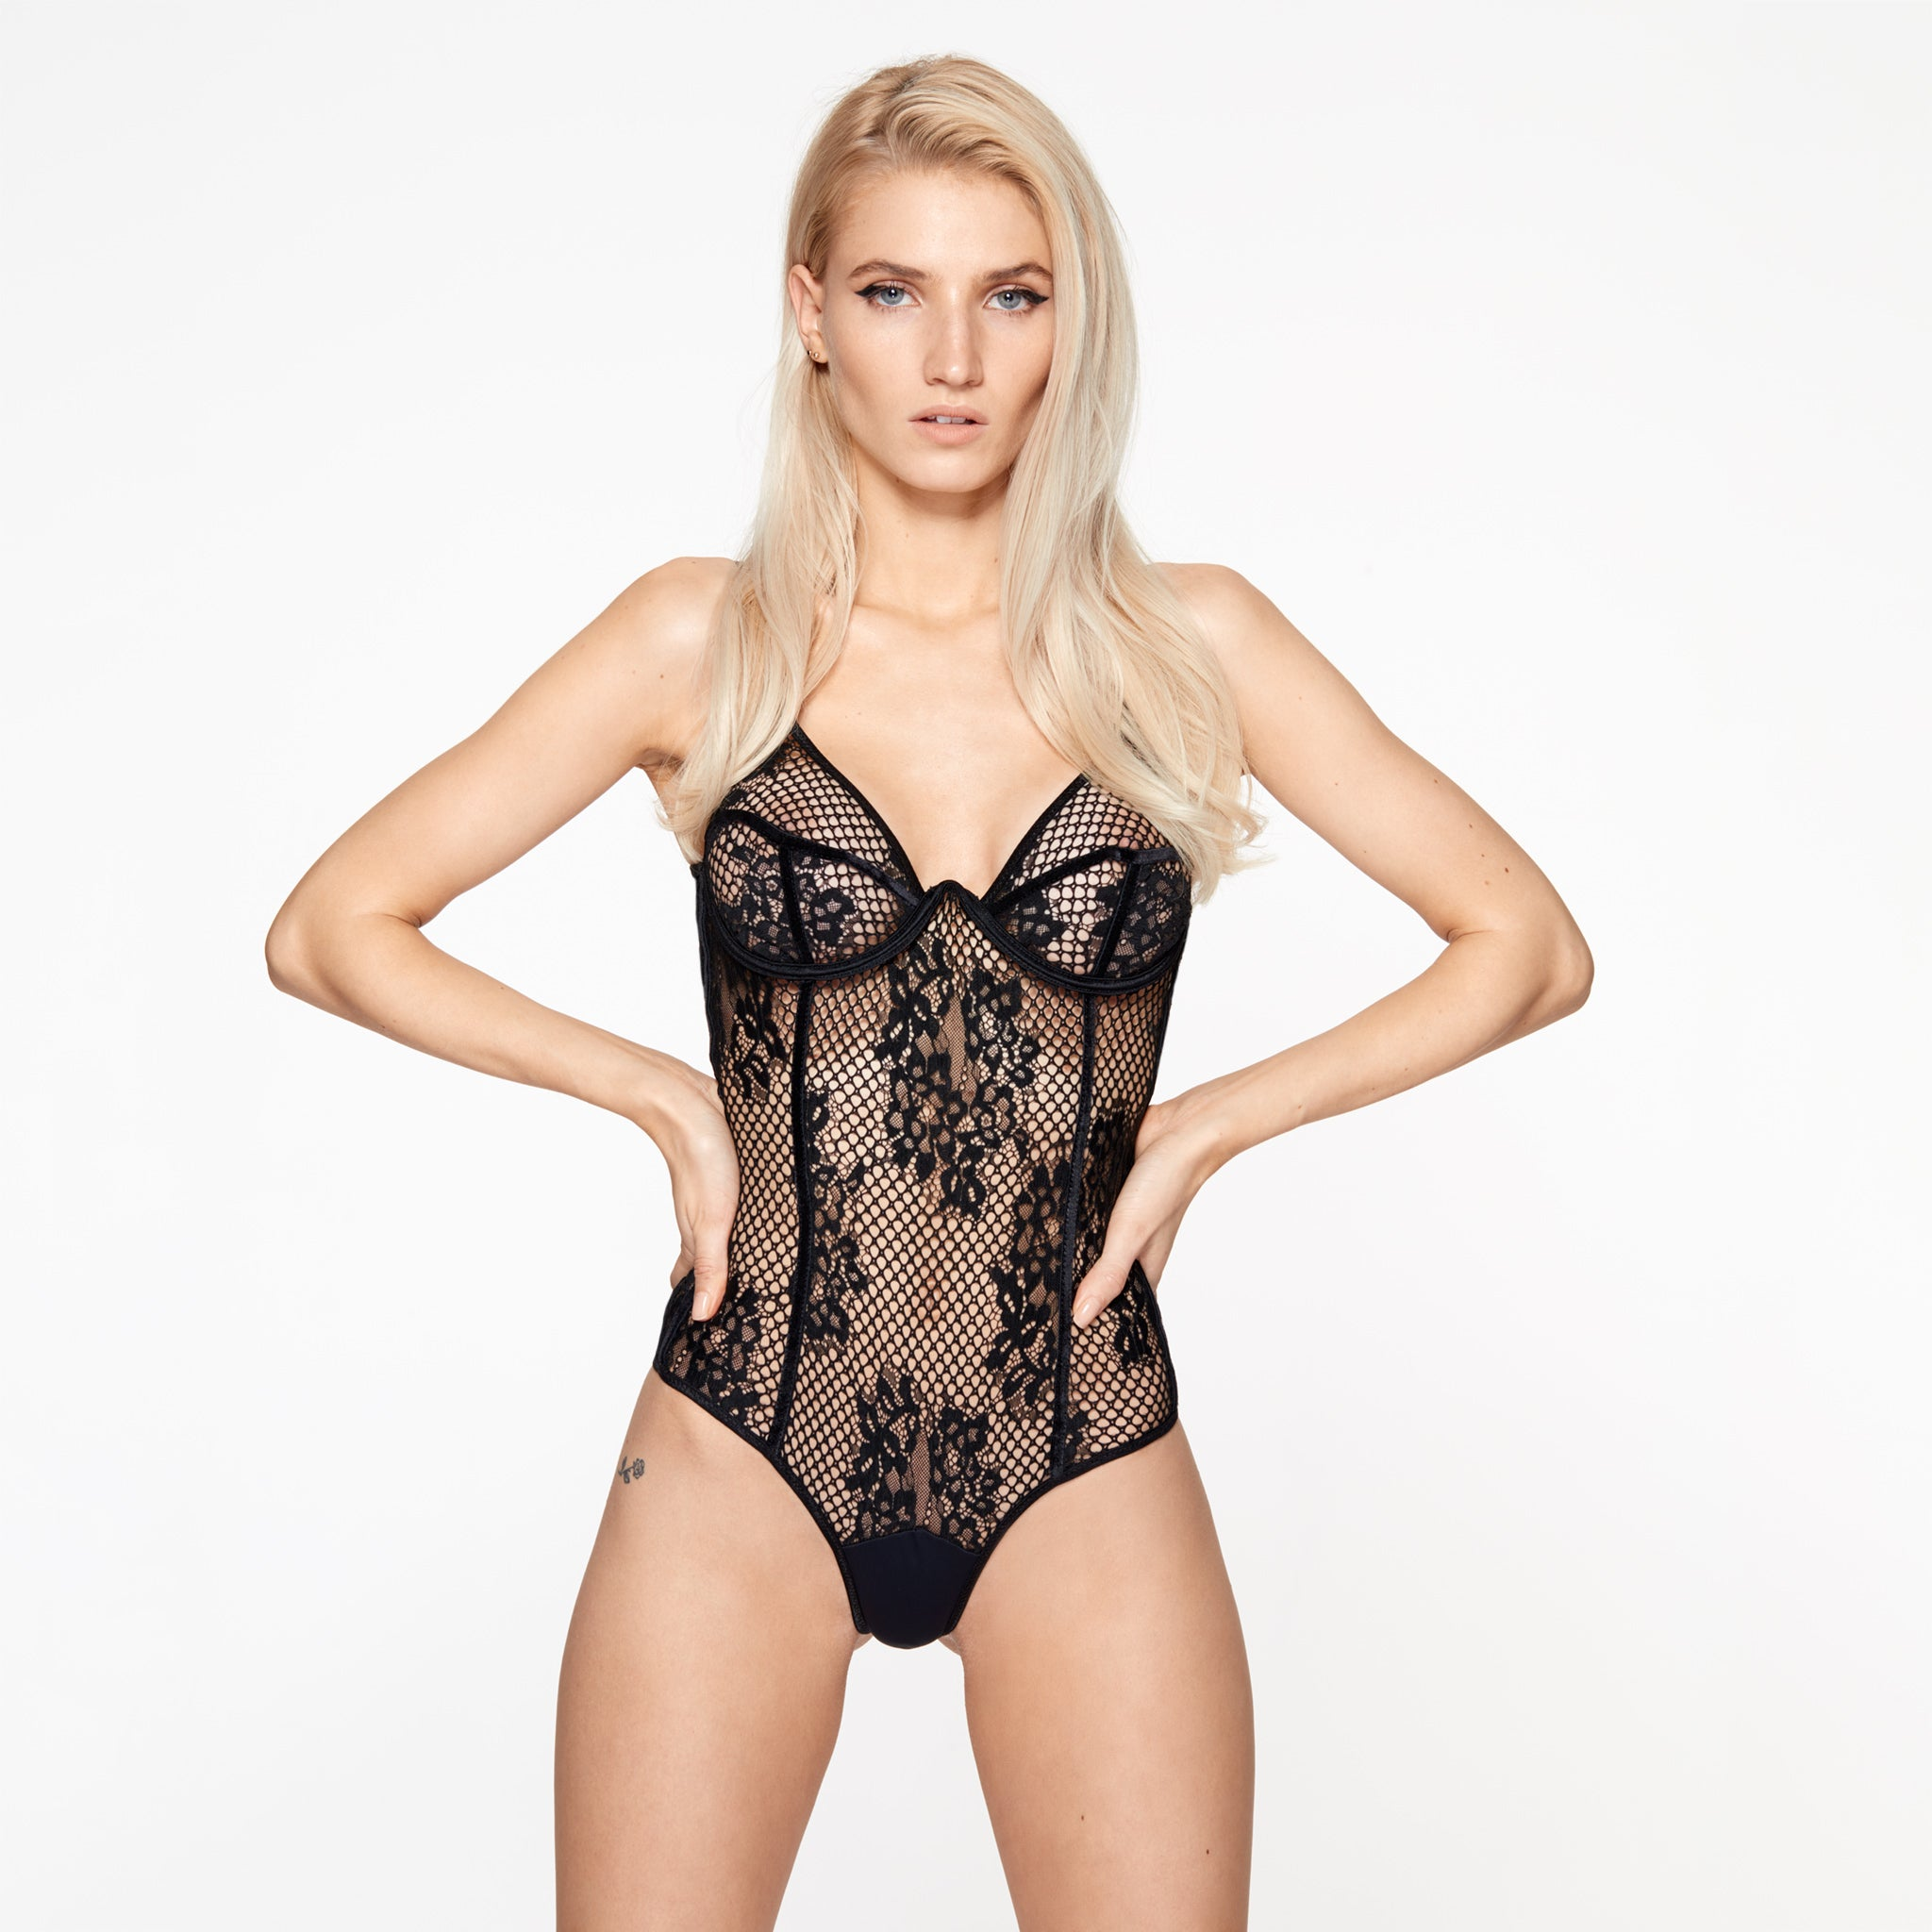 0000035E (Playsuit)(Bra)